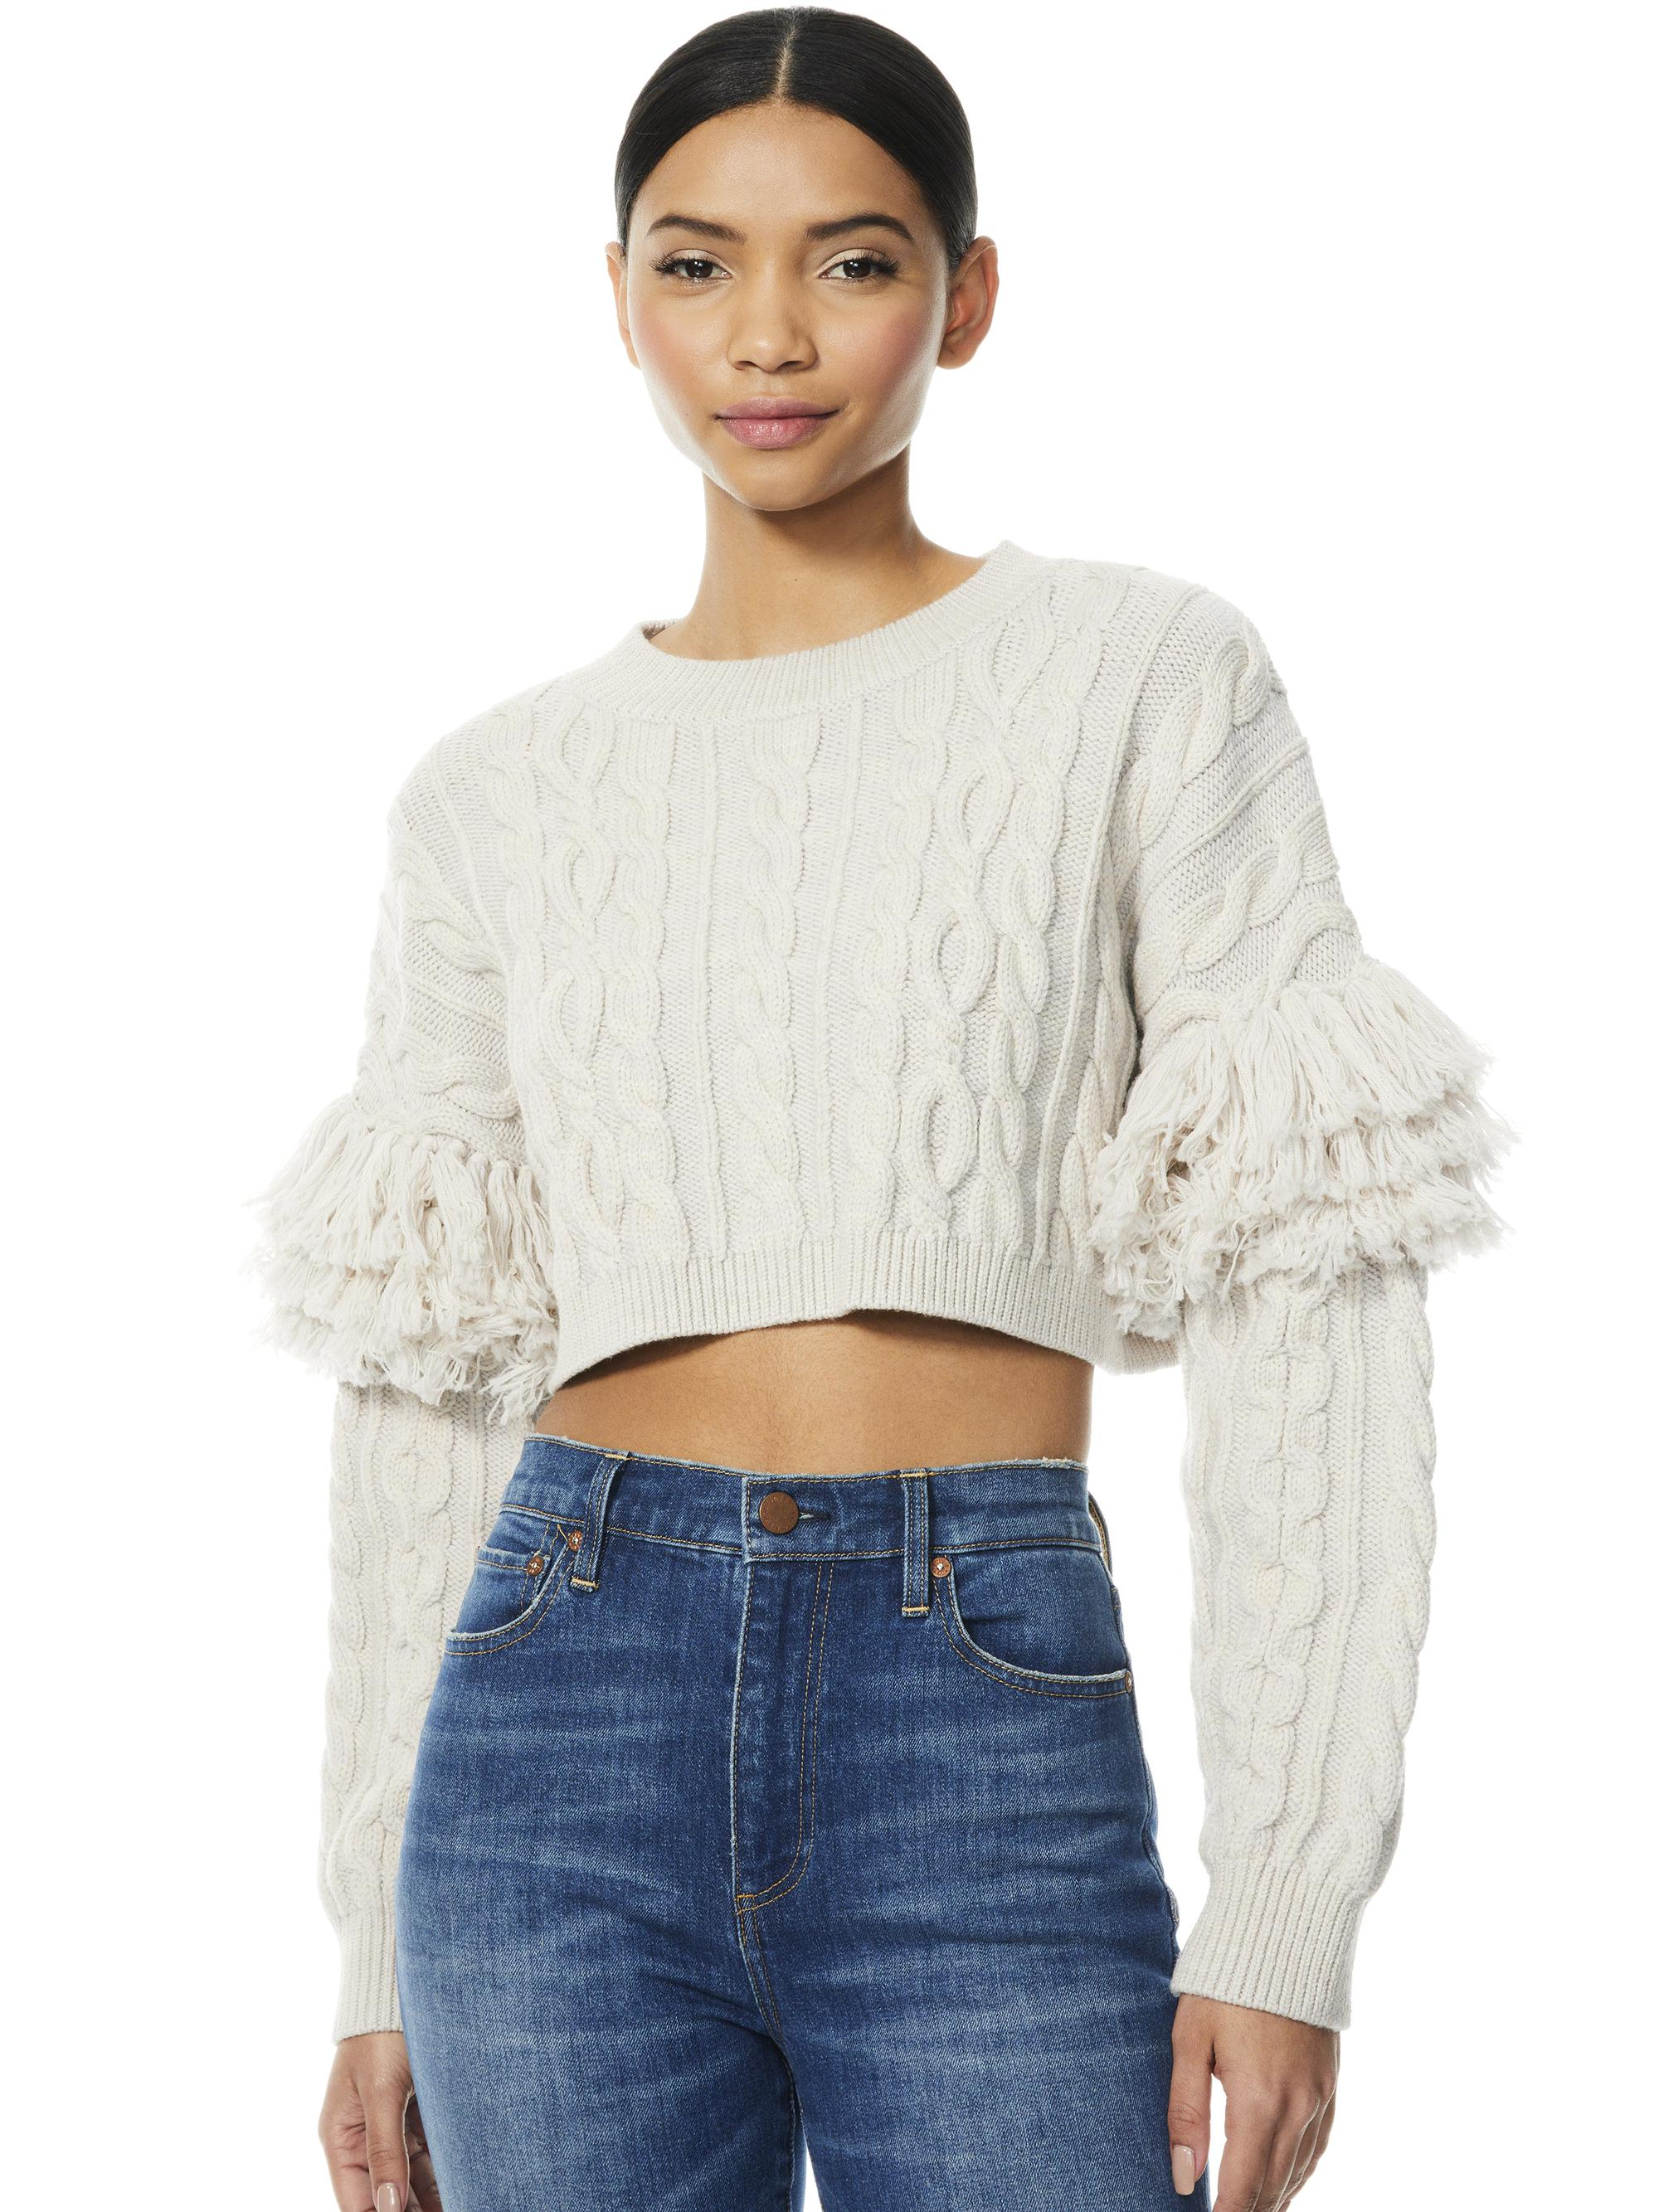 KALA CROPPED CABLEKNIT PULLOVER